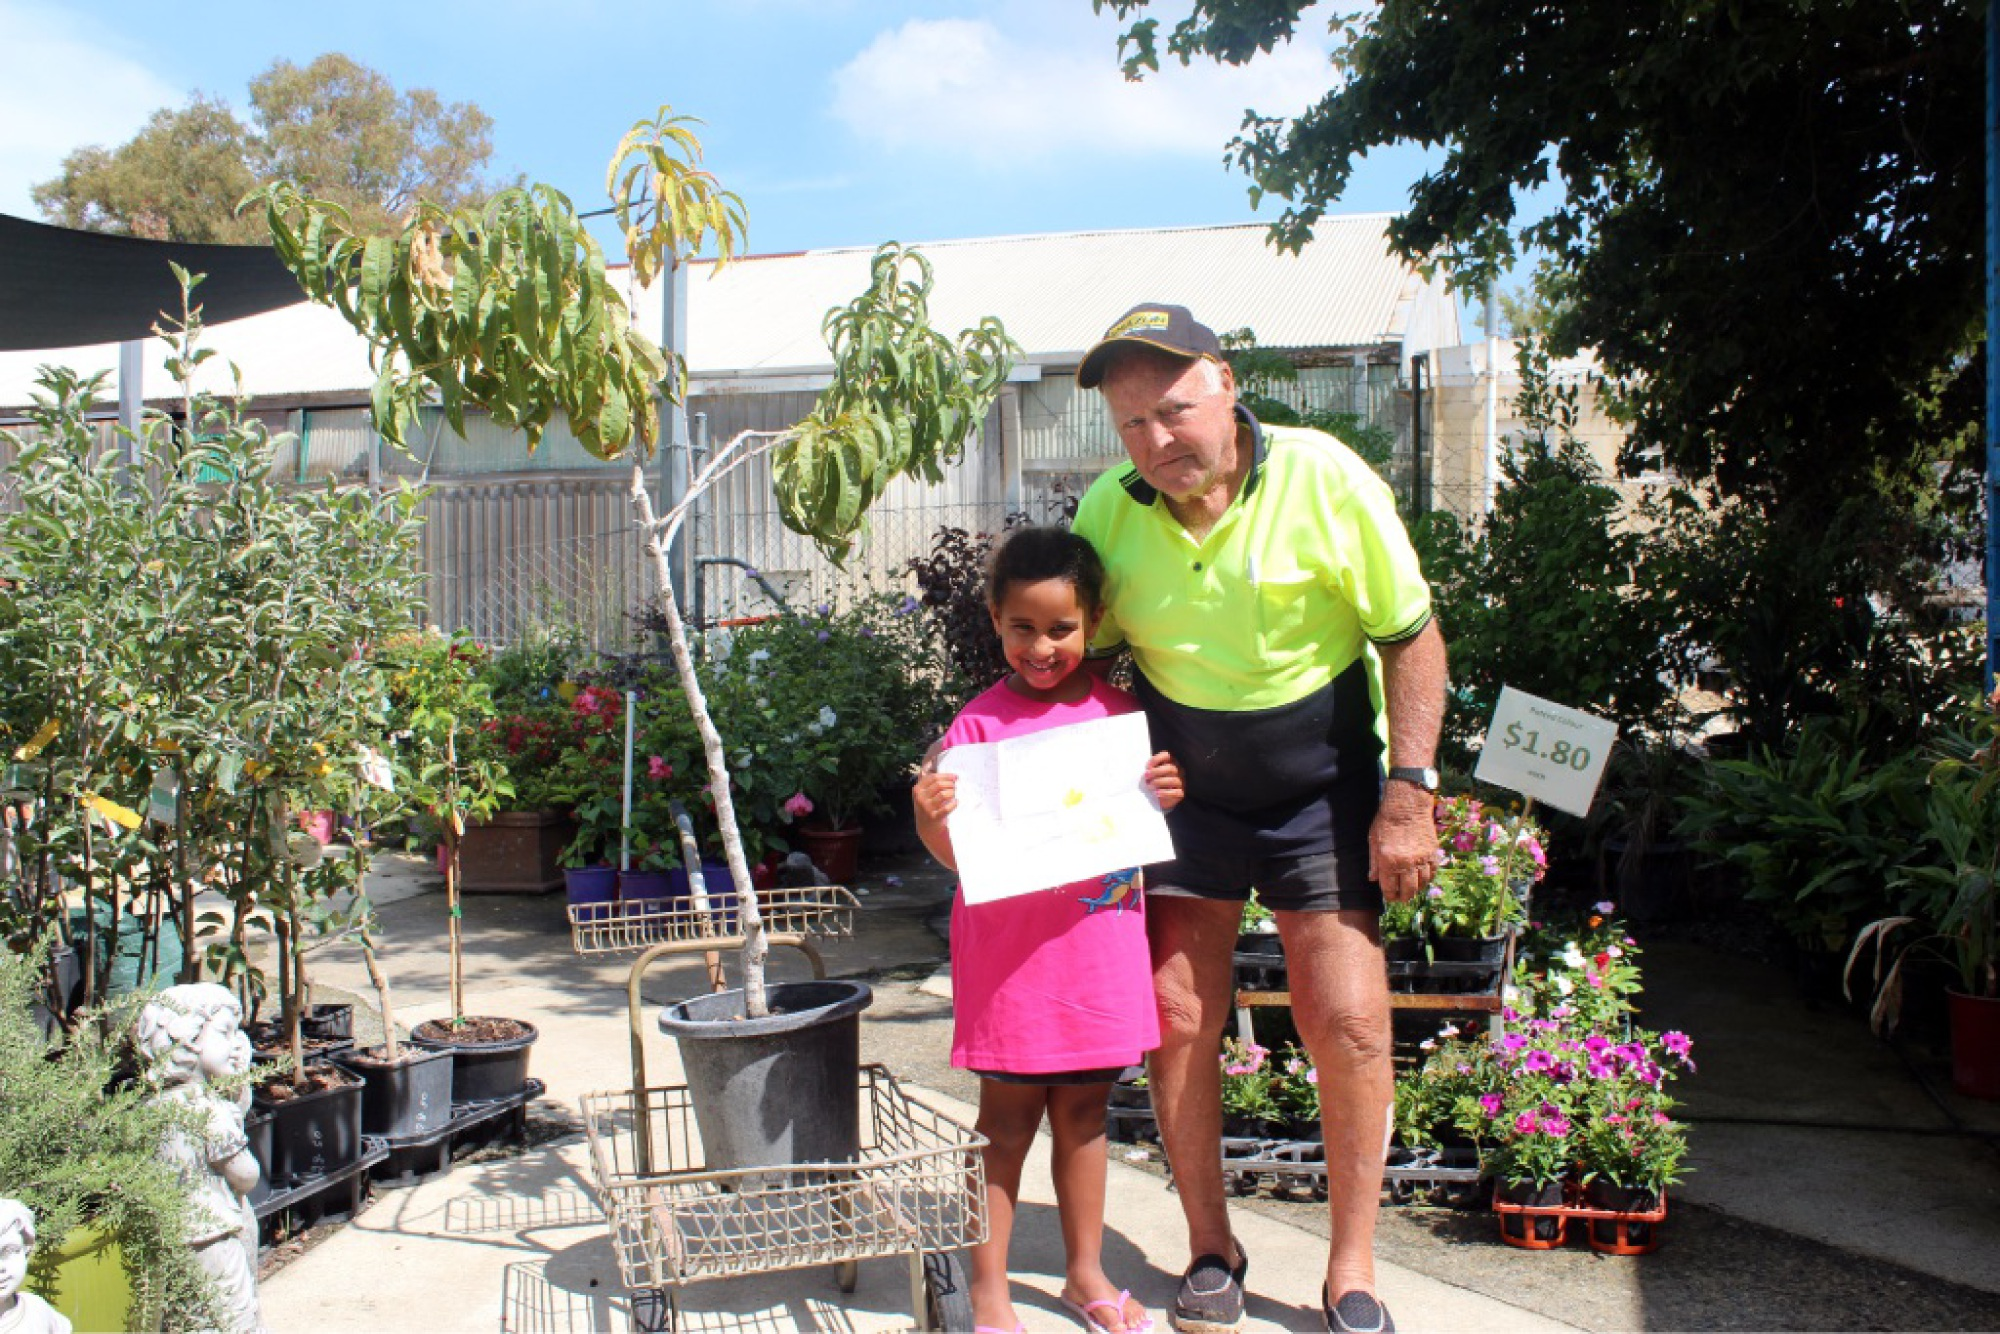 Annika Klaus, with Kearns Garden and Hardware employee Harry Tebbutt, is all smiles after her stolen peach tree was replaced by a new one donated by the store.